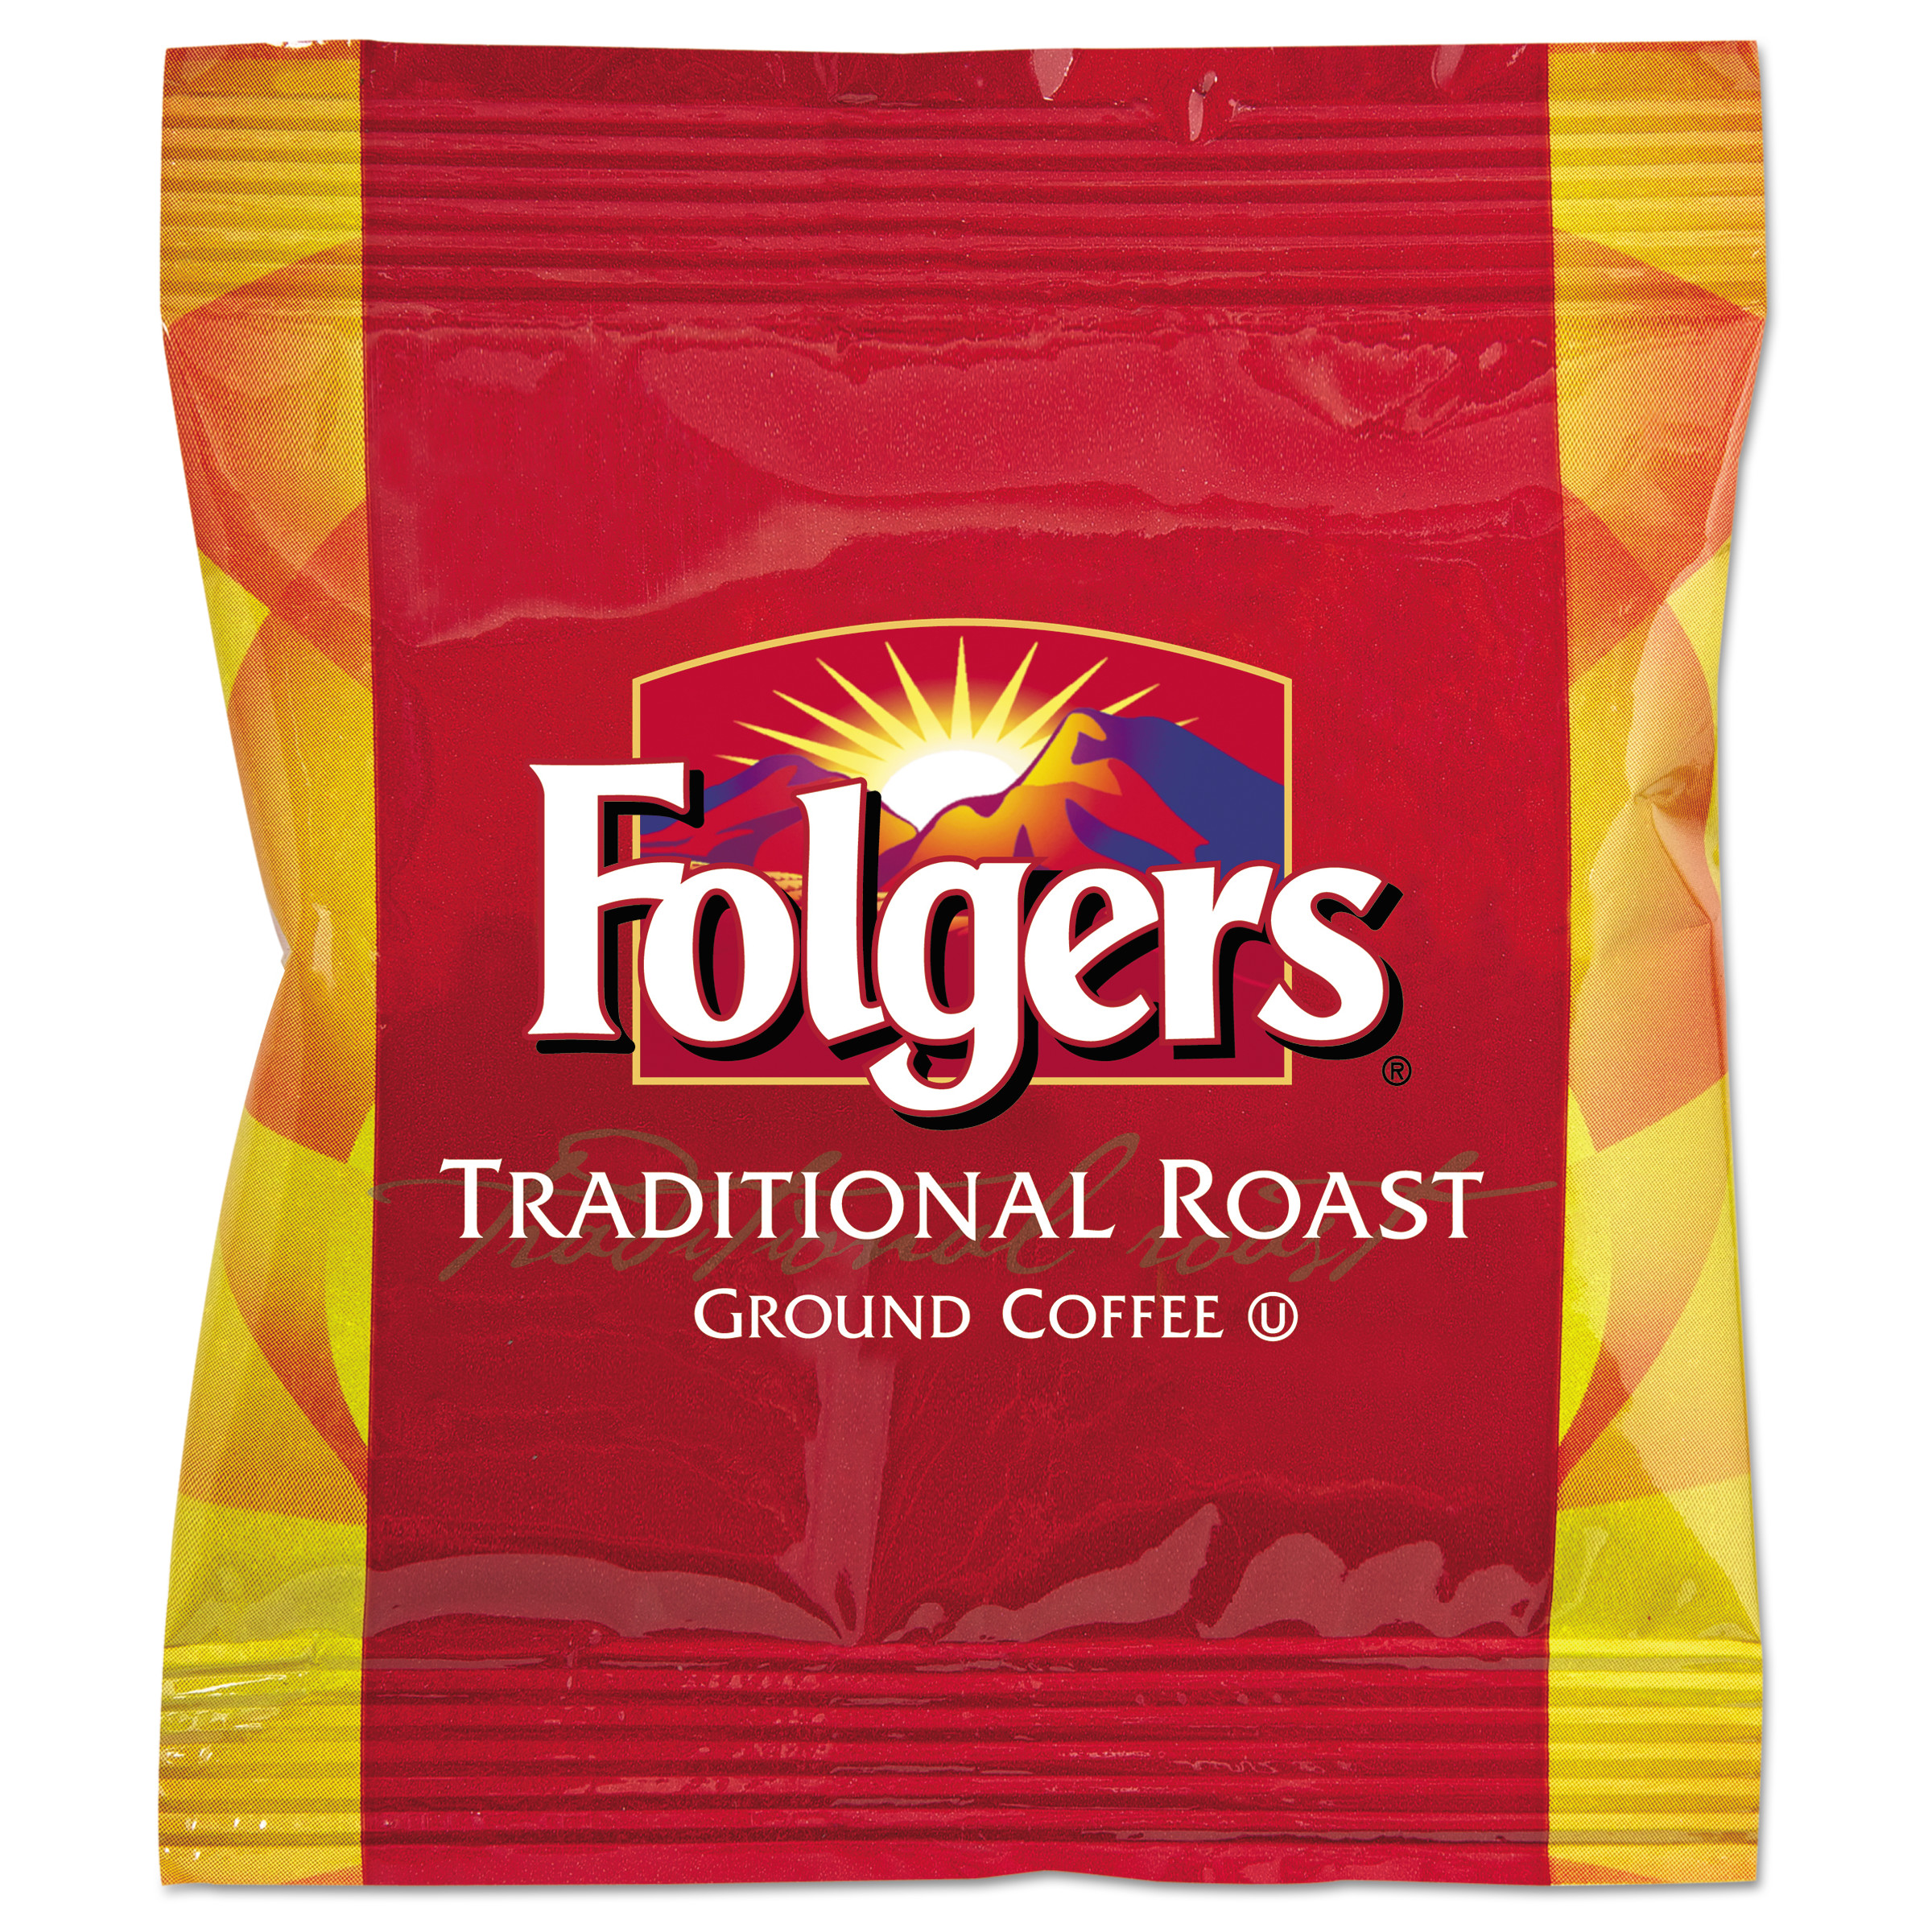 Folgers Traditional Roast Decaf Ground Coffee Fraction Packs, 2 oz. 42 count